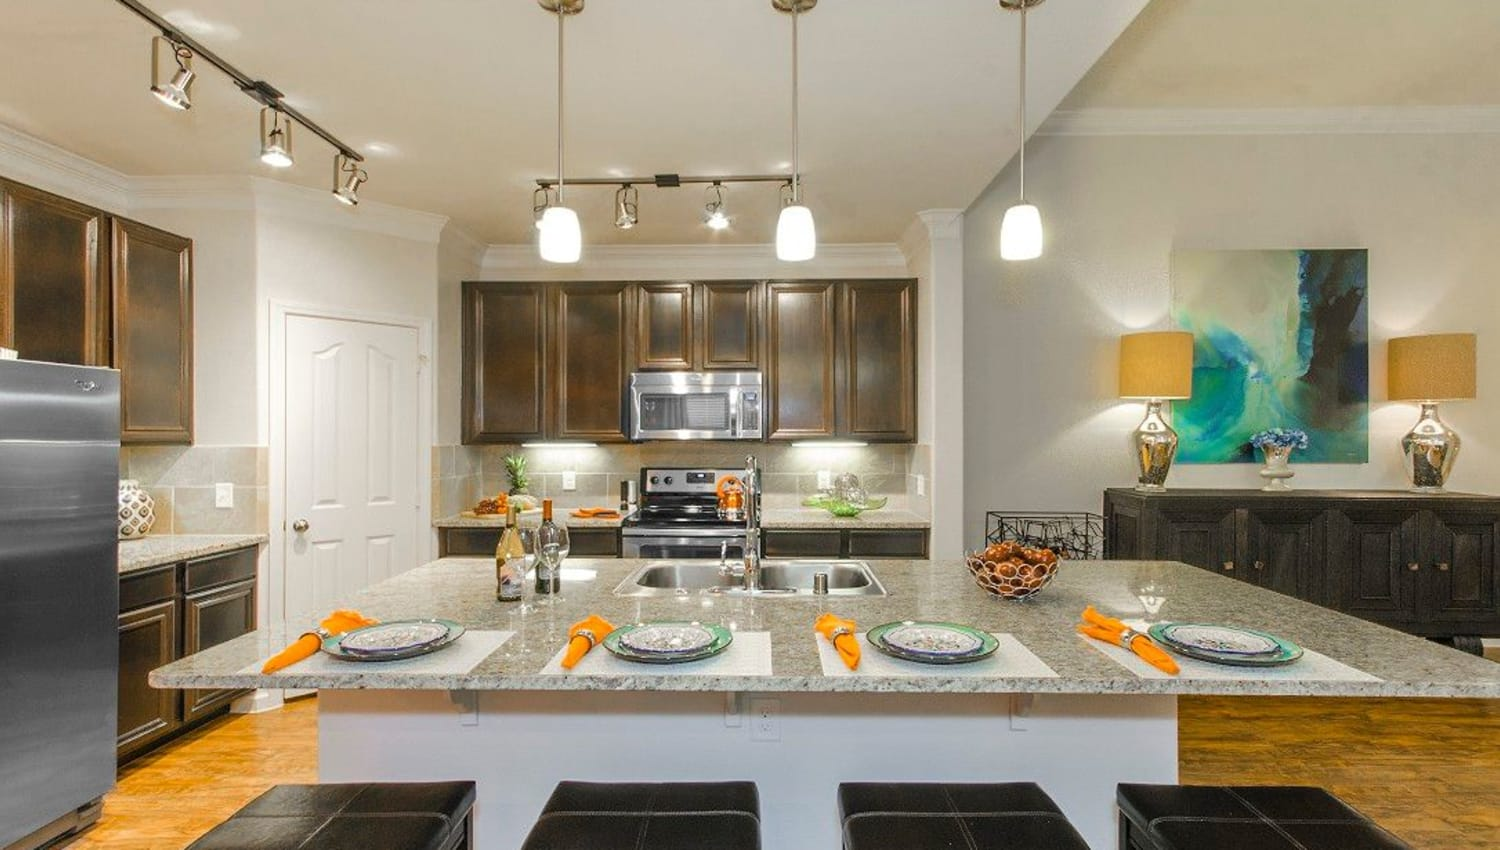 Model home's kitchen with an island and granite countertops at Olympus Woodbridge in Sachse, Texas